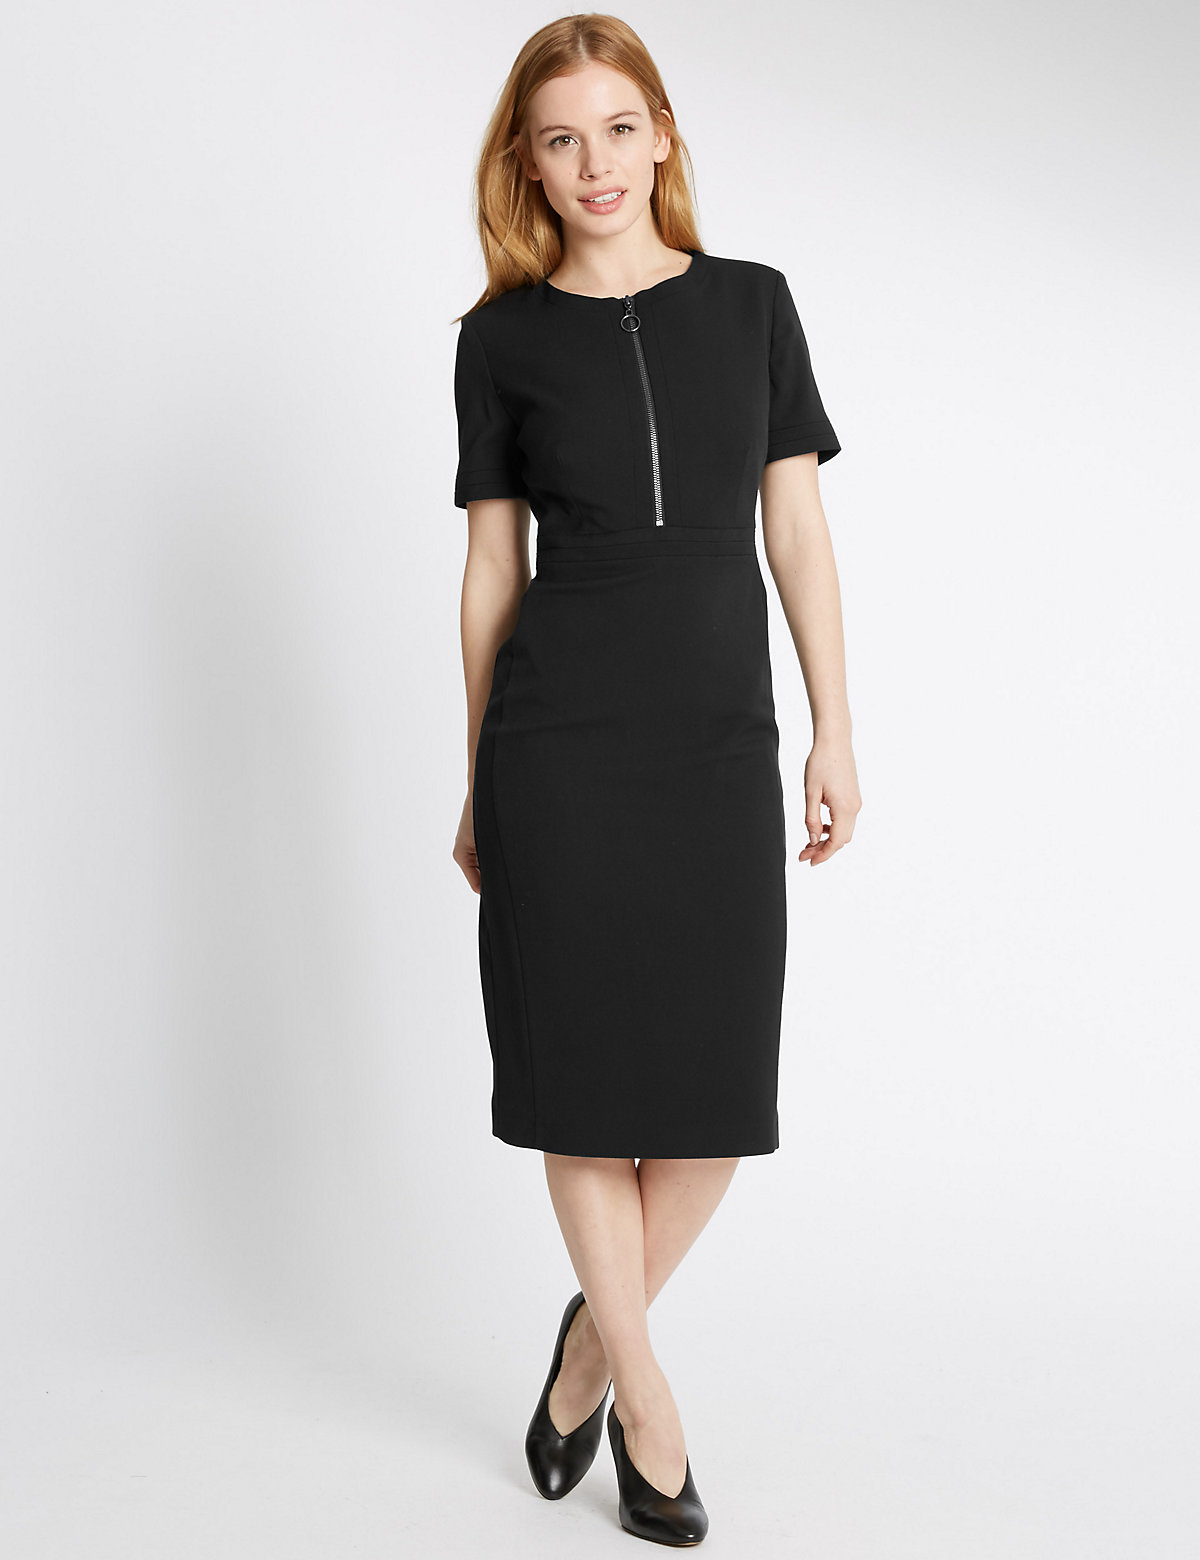 MS Collection PETITE Zipped Short Sleeve Shift Dress Marks and Spencer P22491930